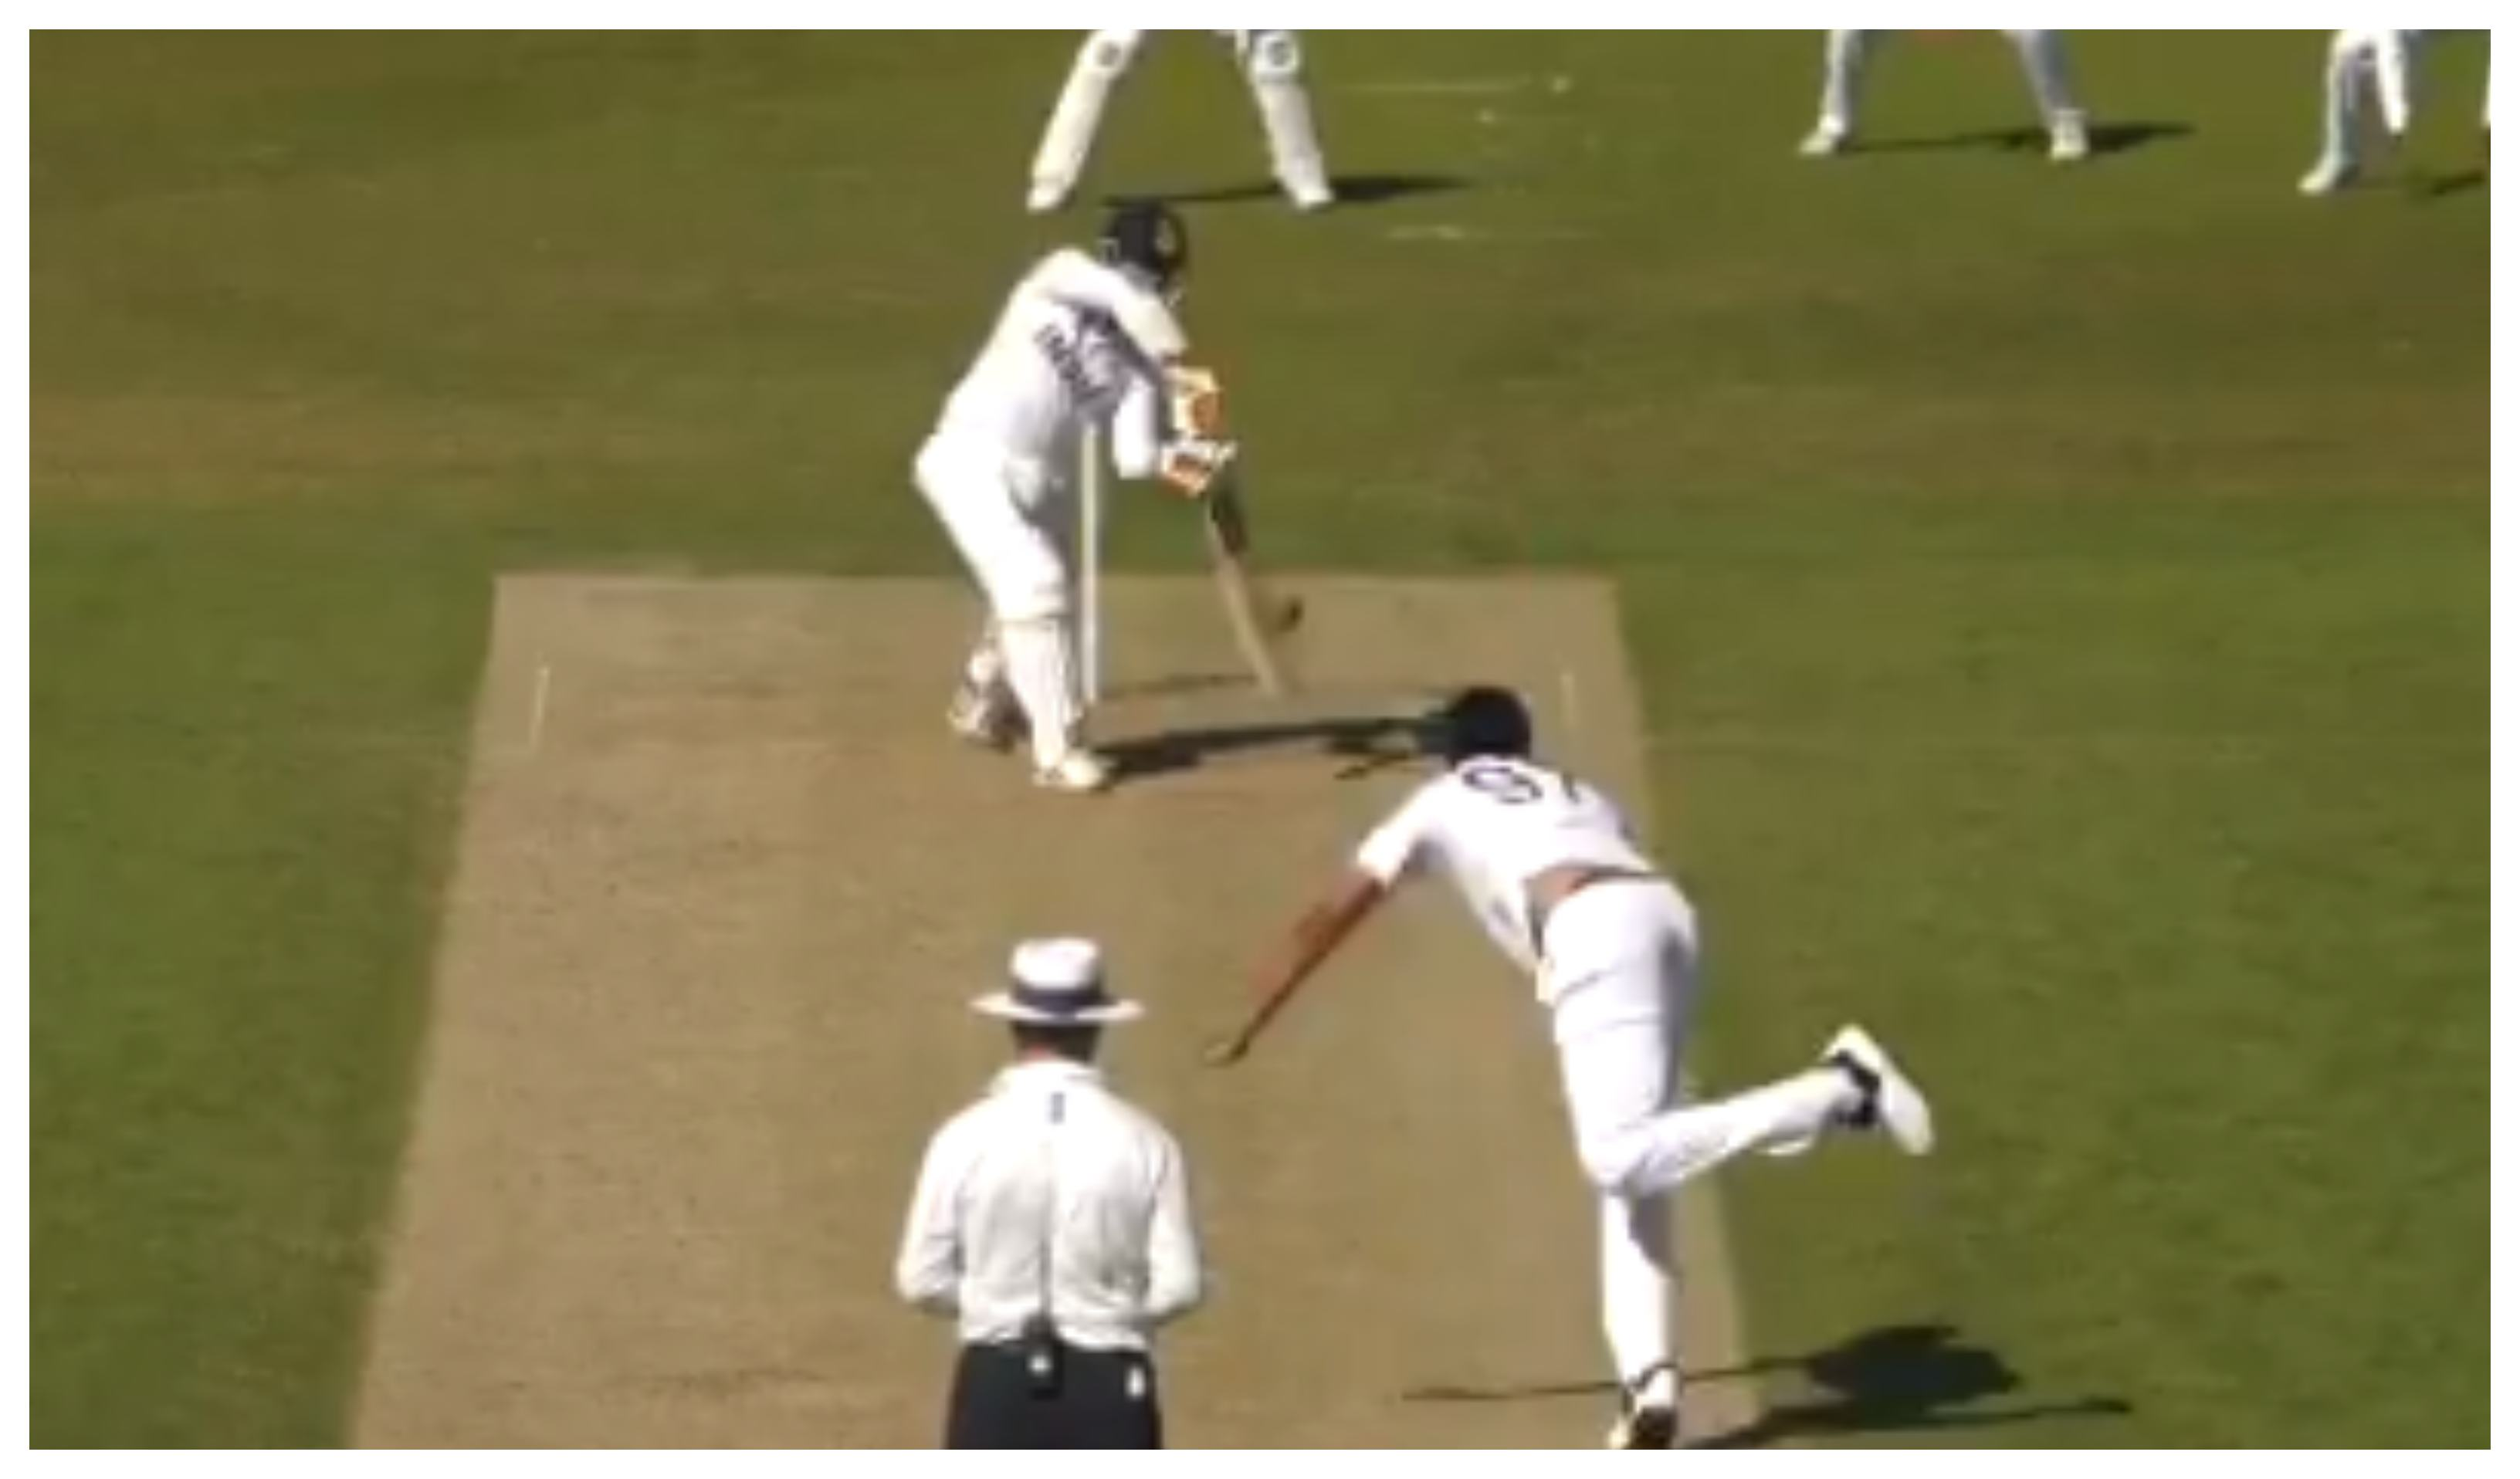 Ravindra Jadeja in action on Day 3 of the intra-squad match | BCCI/Screengrab